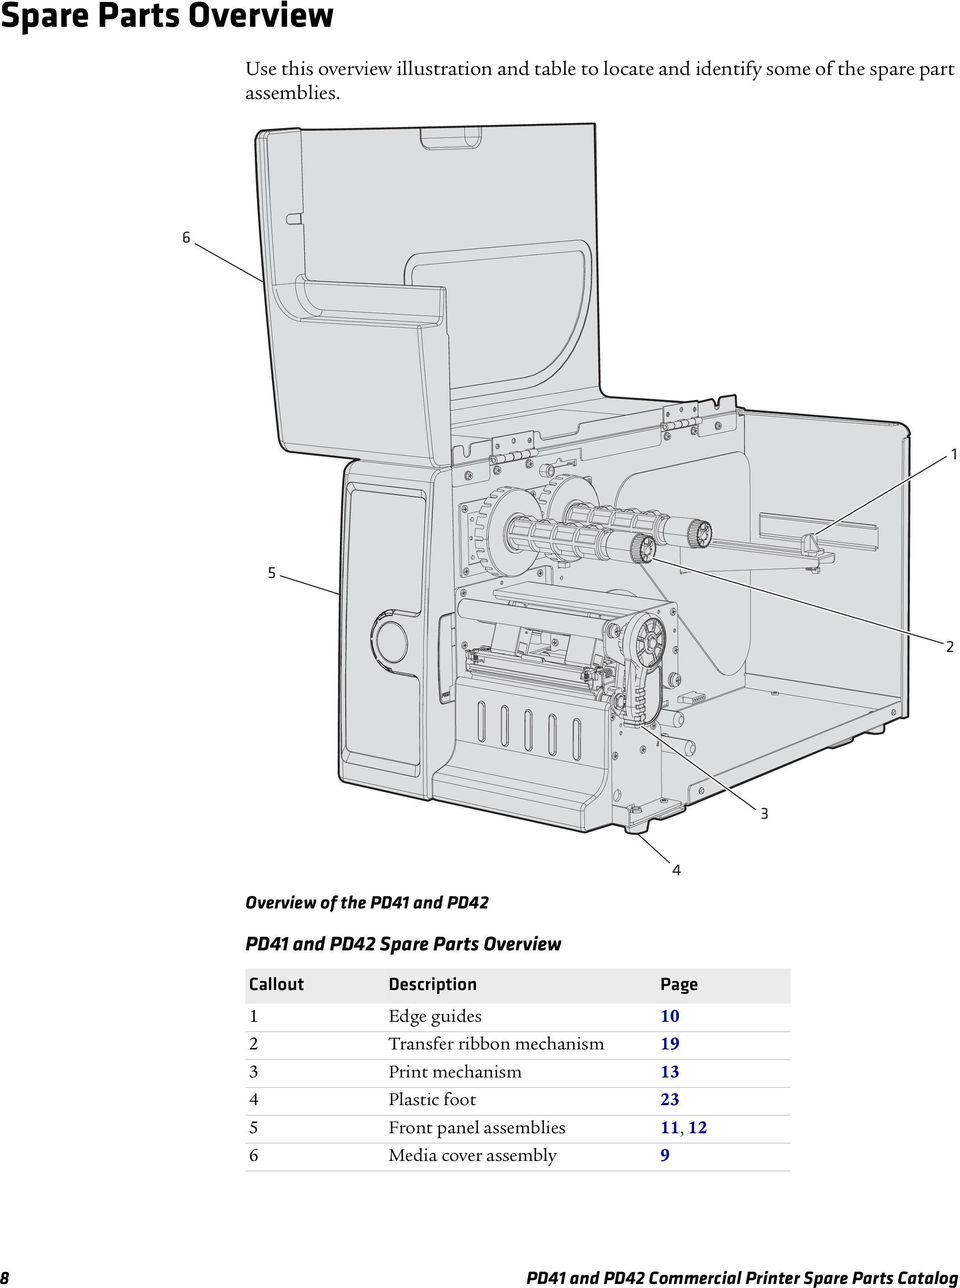 6 5 2 3 4 Overview of the PD4 and PD42 PD4 and PD42 Spare Parts Overview Callout Description Page